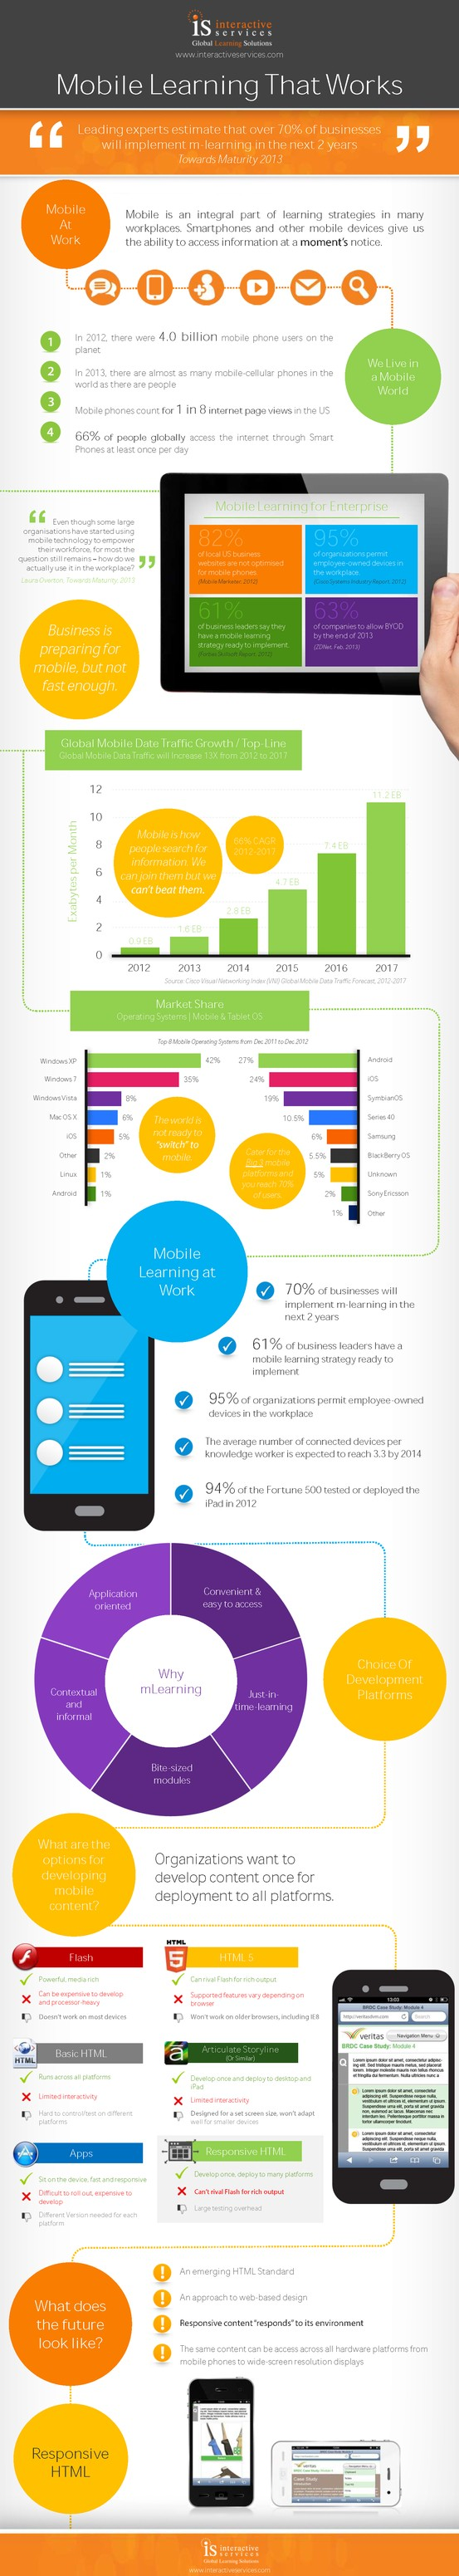 Mobile Learning That Works Mlearning Educational Infographic Mobile Learning Learning Technology